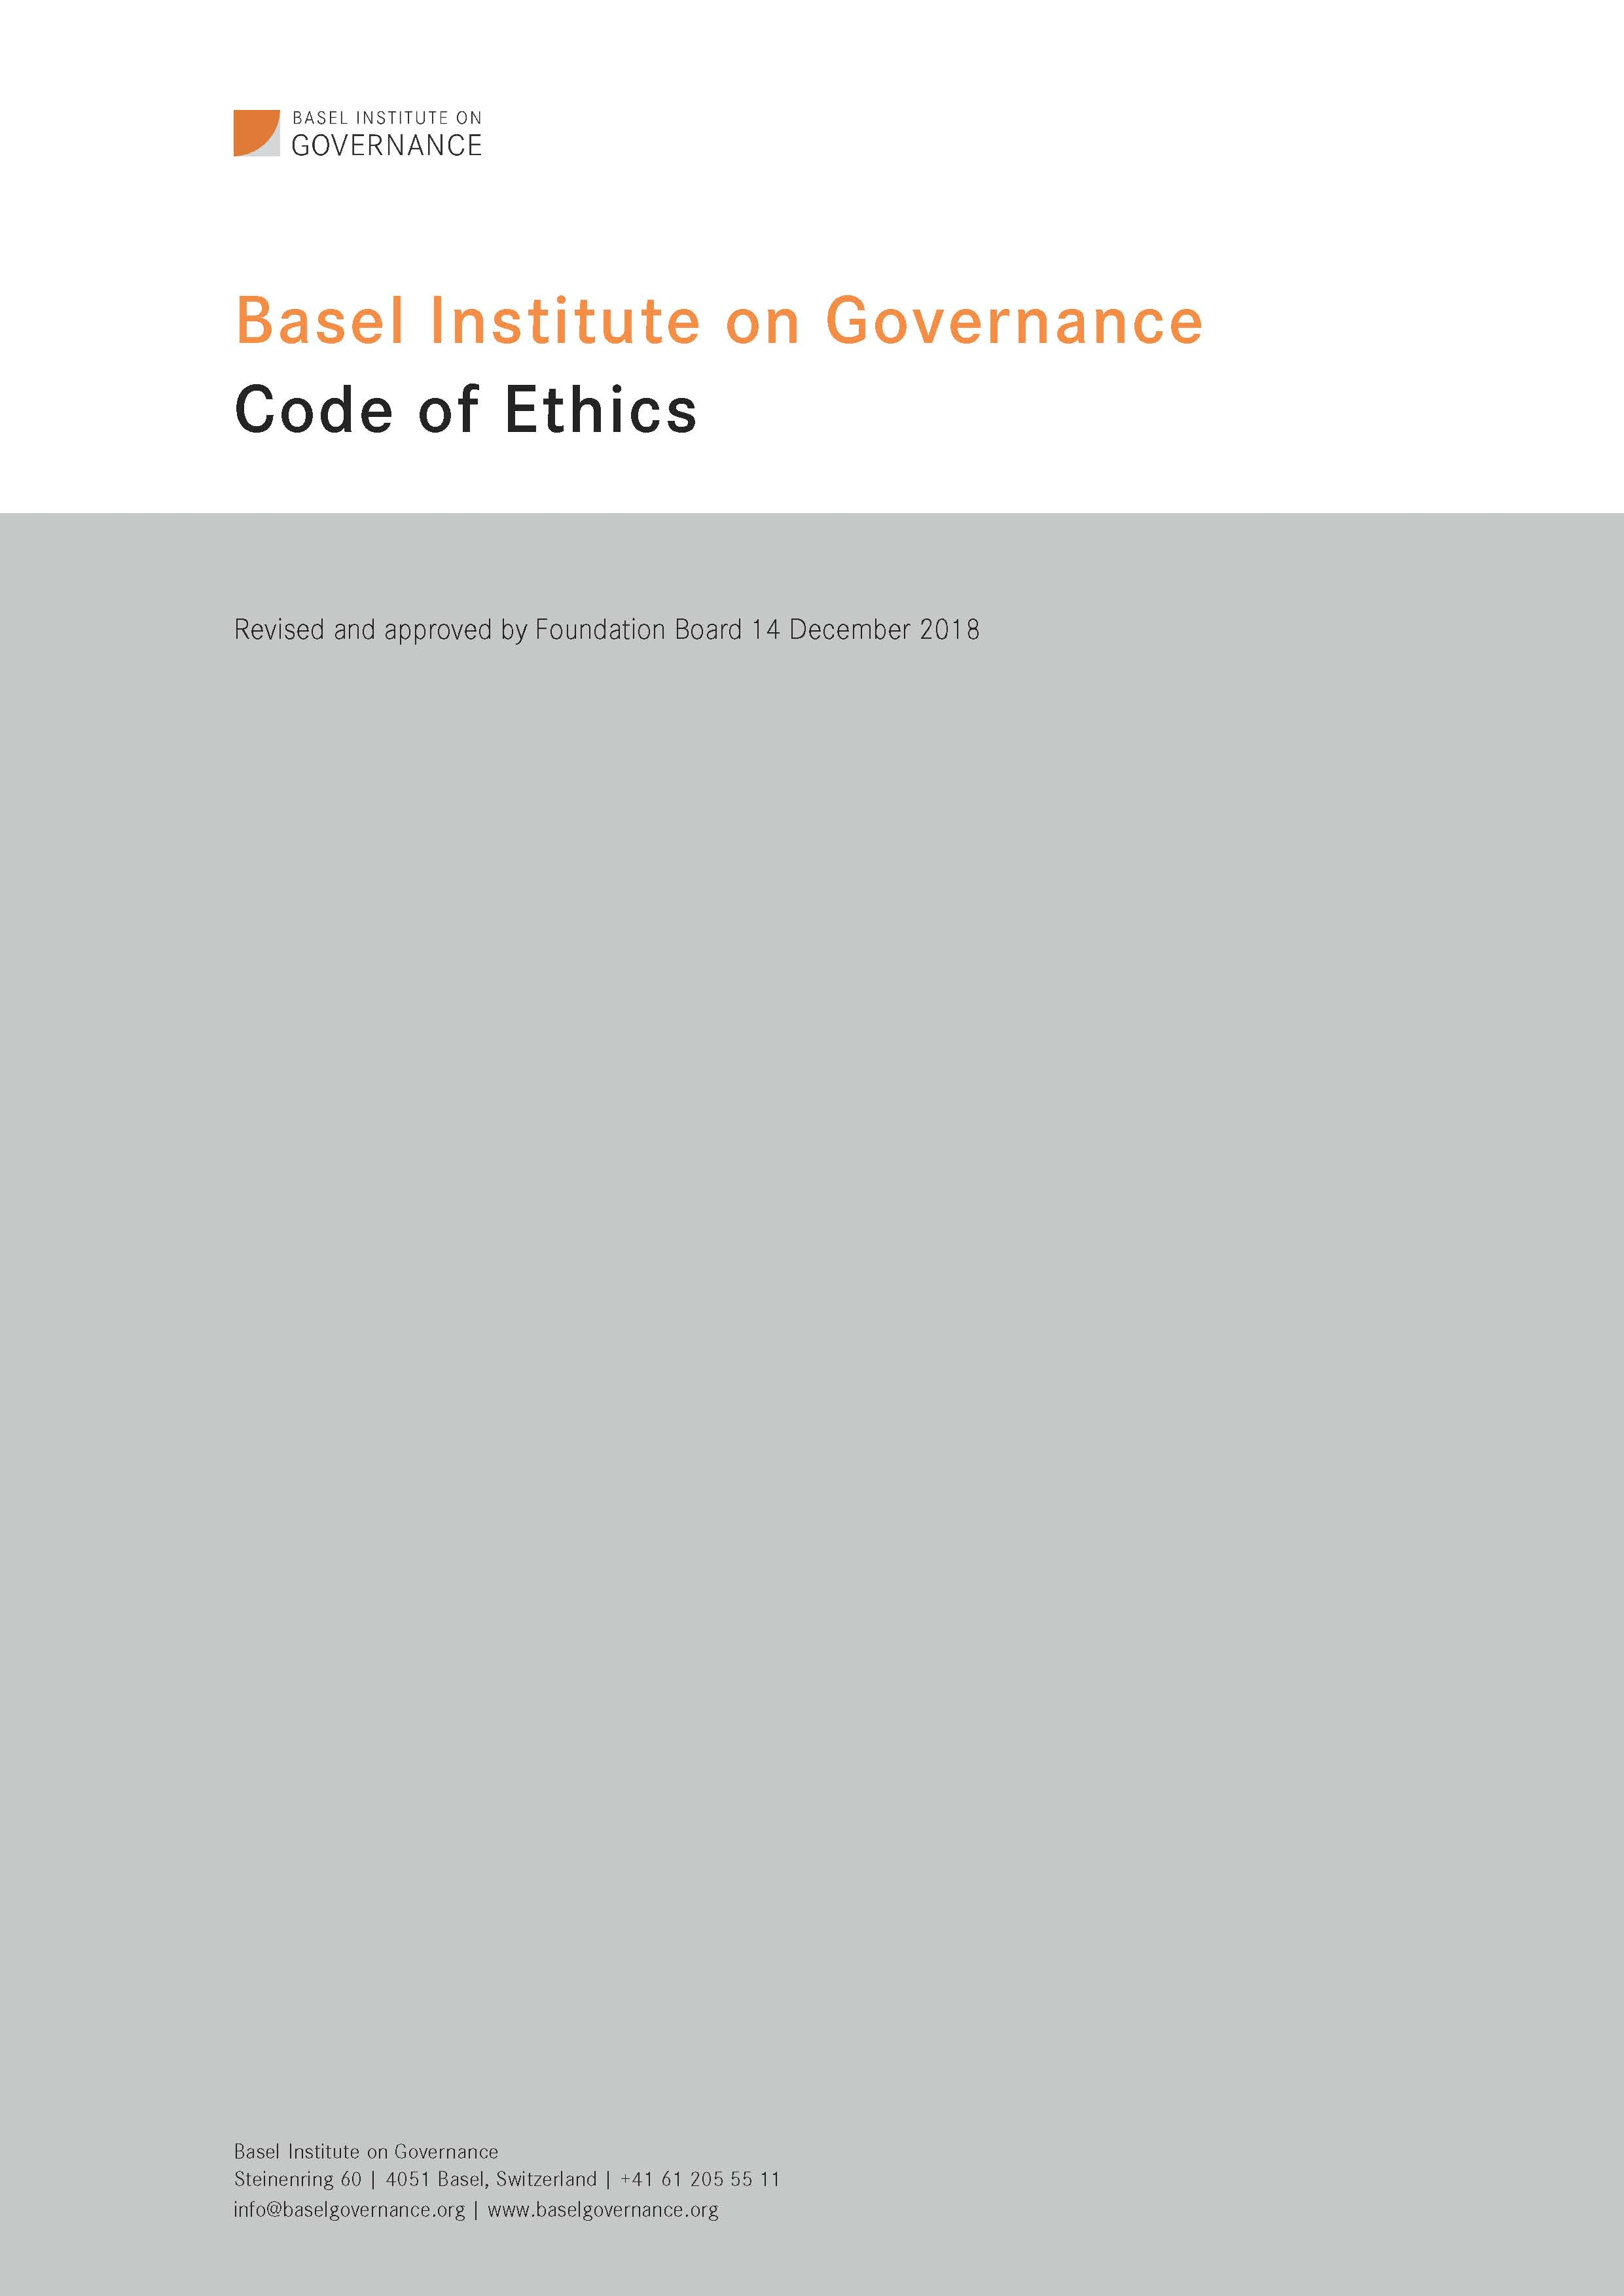 Code of Ethics front cover